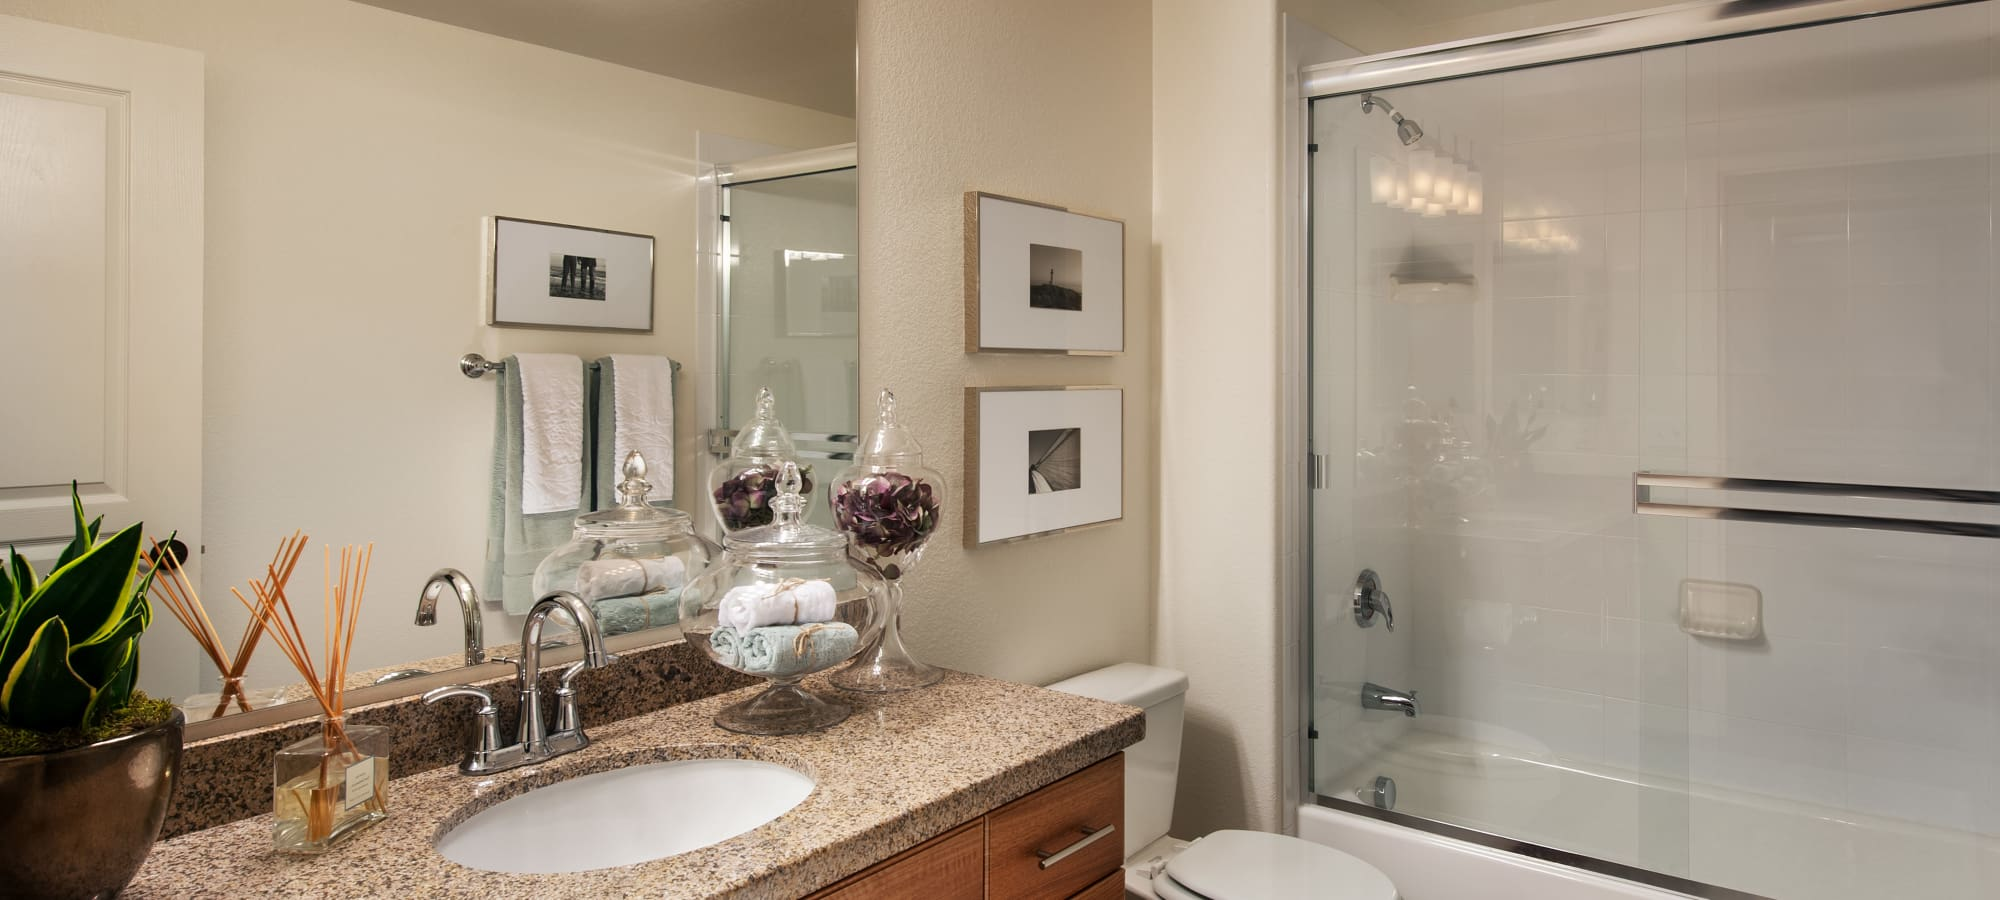 Large vanity mirror and granite countertop in bathroom of model home at San Paseo in Phoenix, Arizona